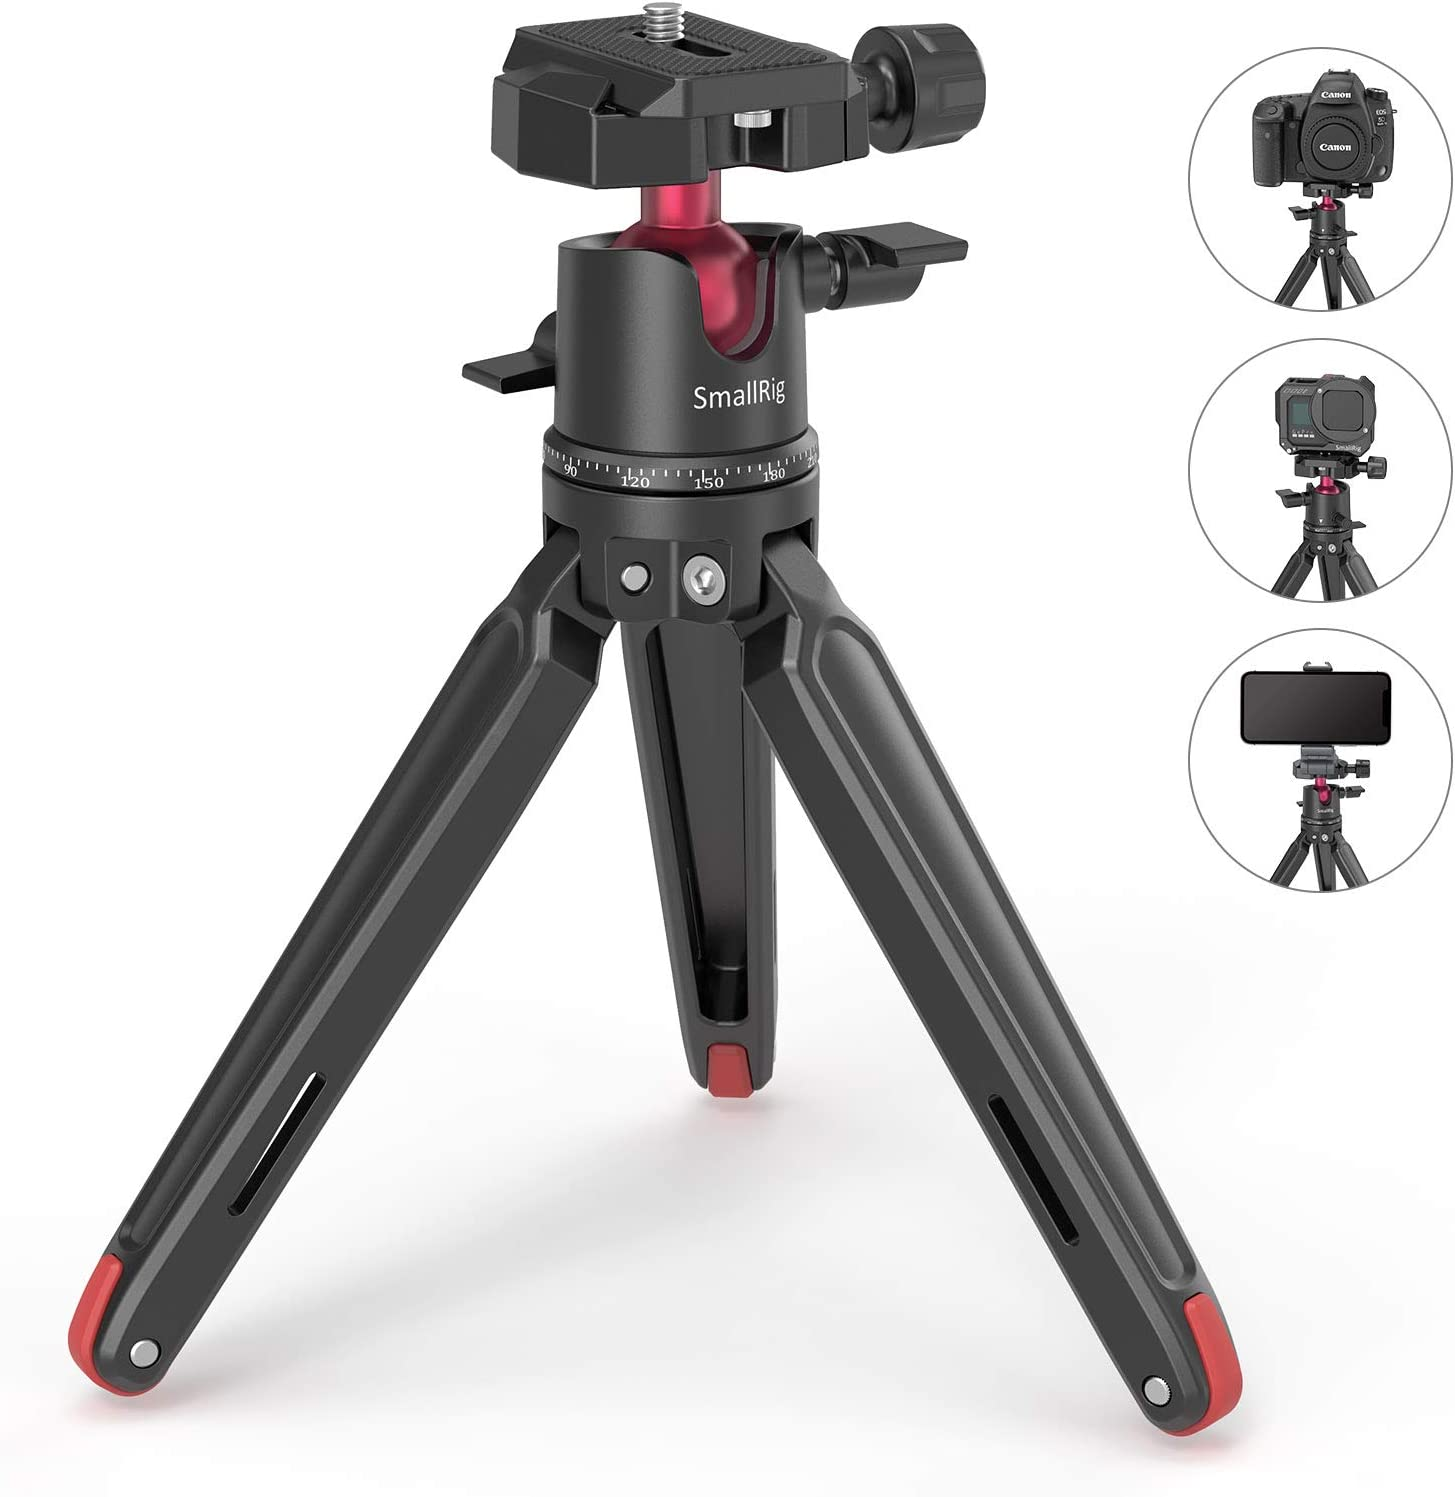 SMALLRIG Mini Tripod for Camera, Updated Desktop Tabletop Tripod with Arca-Type Compatible QR Plate, 360° Ball Head and 1/4 Screws Portable for Compact Cameras DSLRs, Phone, Gopro - BUT2664